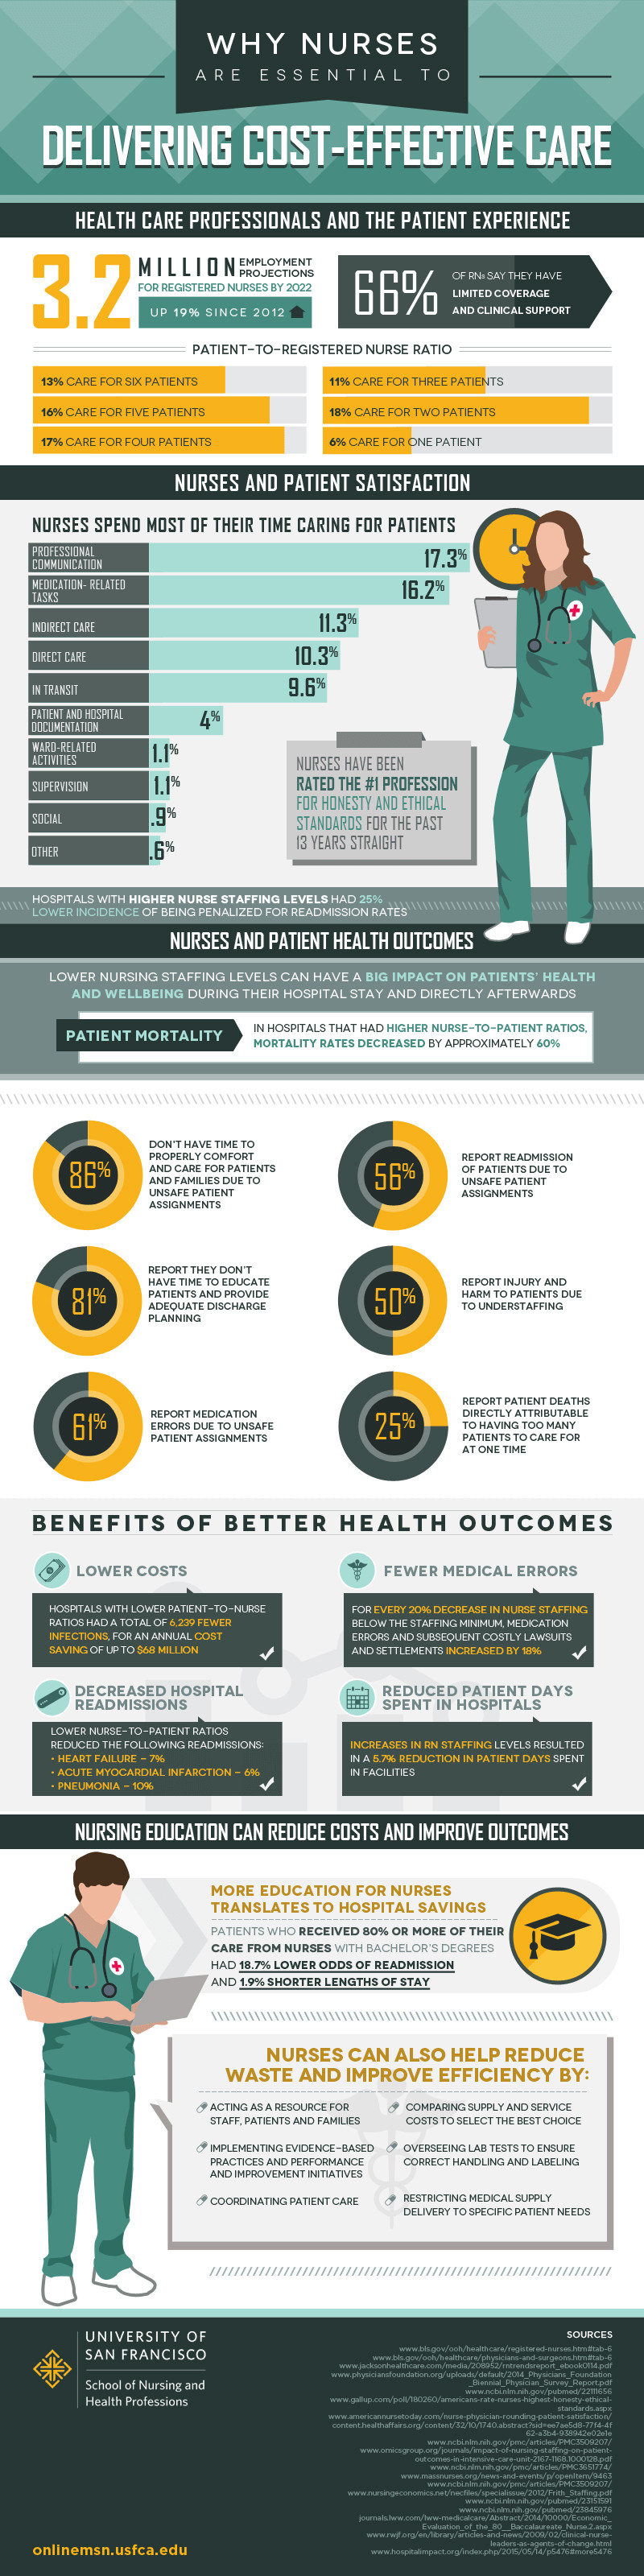 Vital Role Of Nurses In The Delivery Of Affordable Care [Infographic]